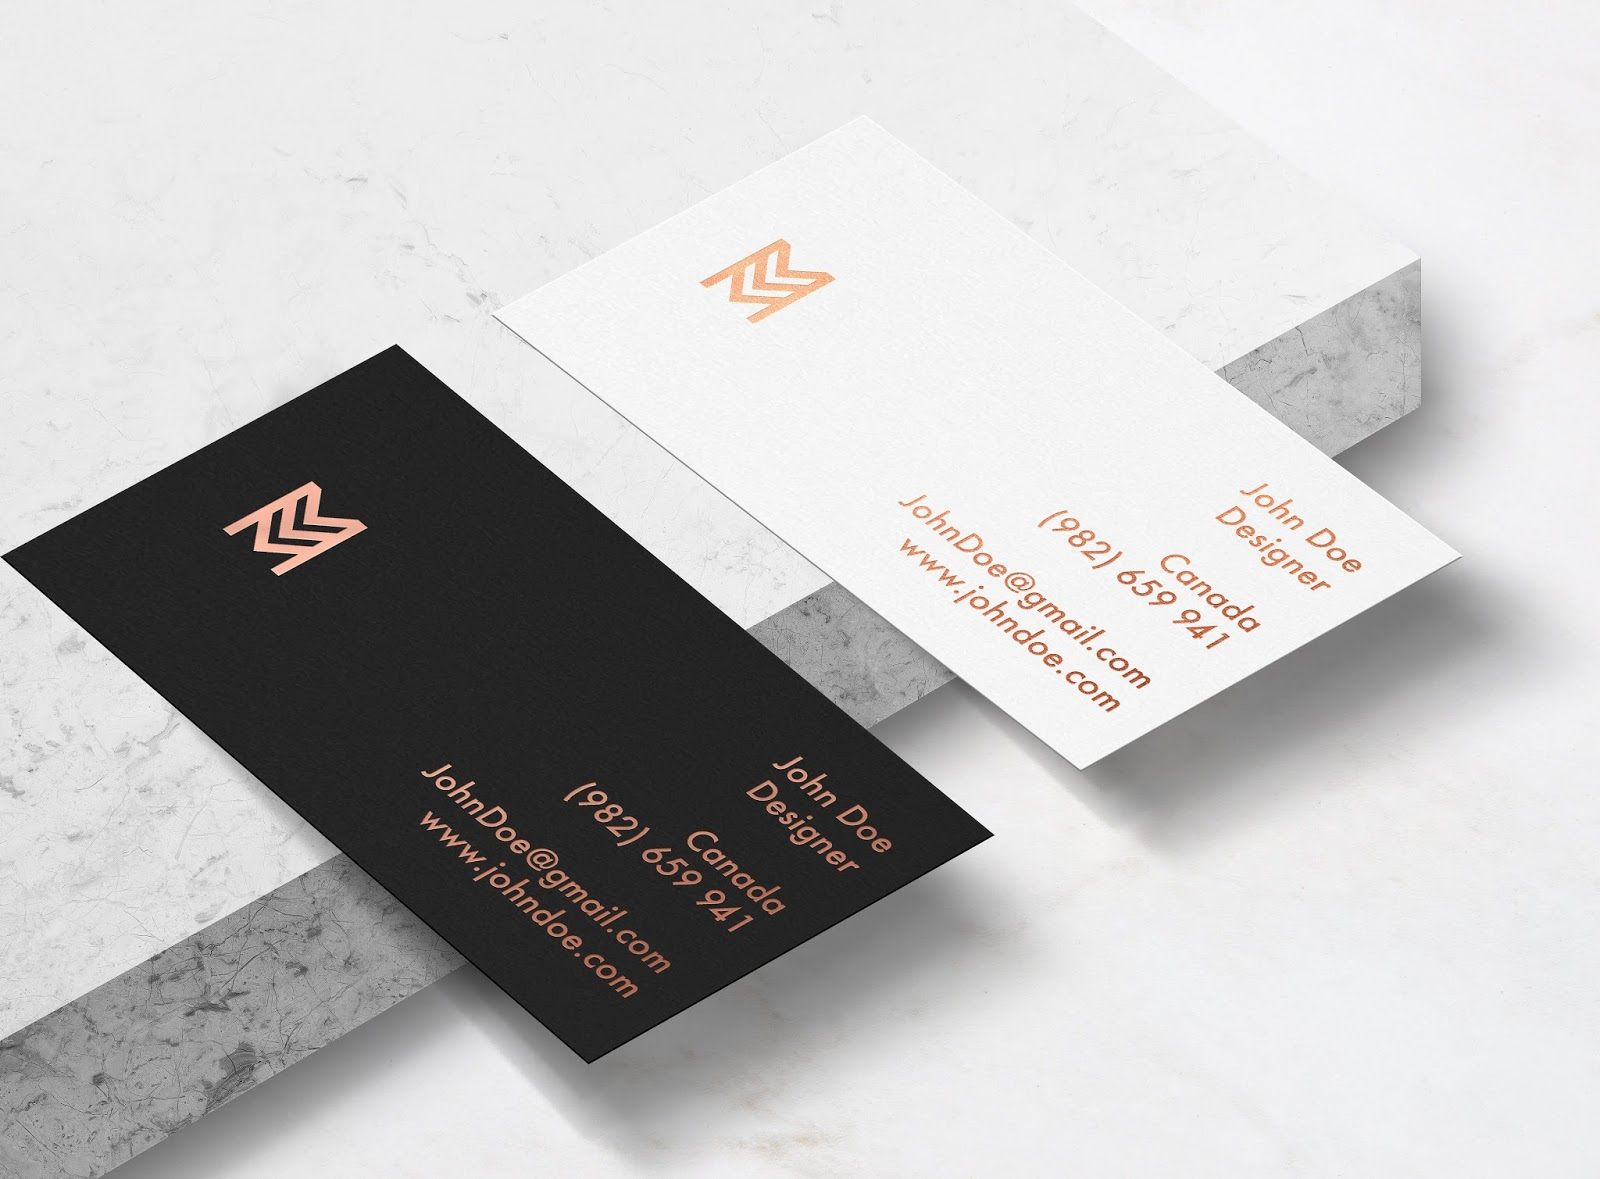 50 surefire business card tips business card tips business card design tips guidelines tips for effective business cards business card tips for colourmoves